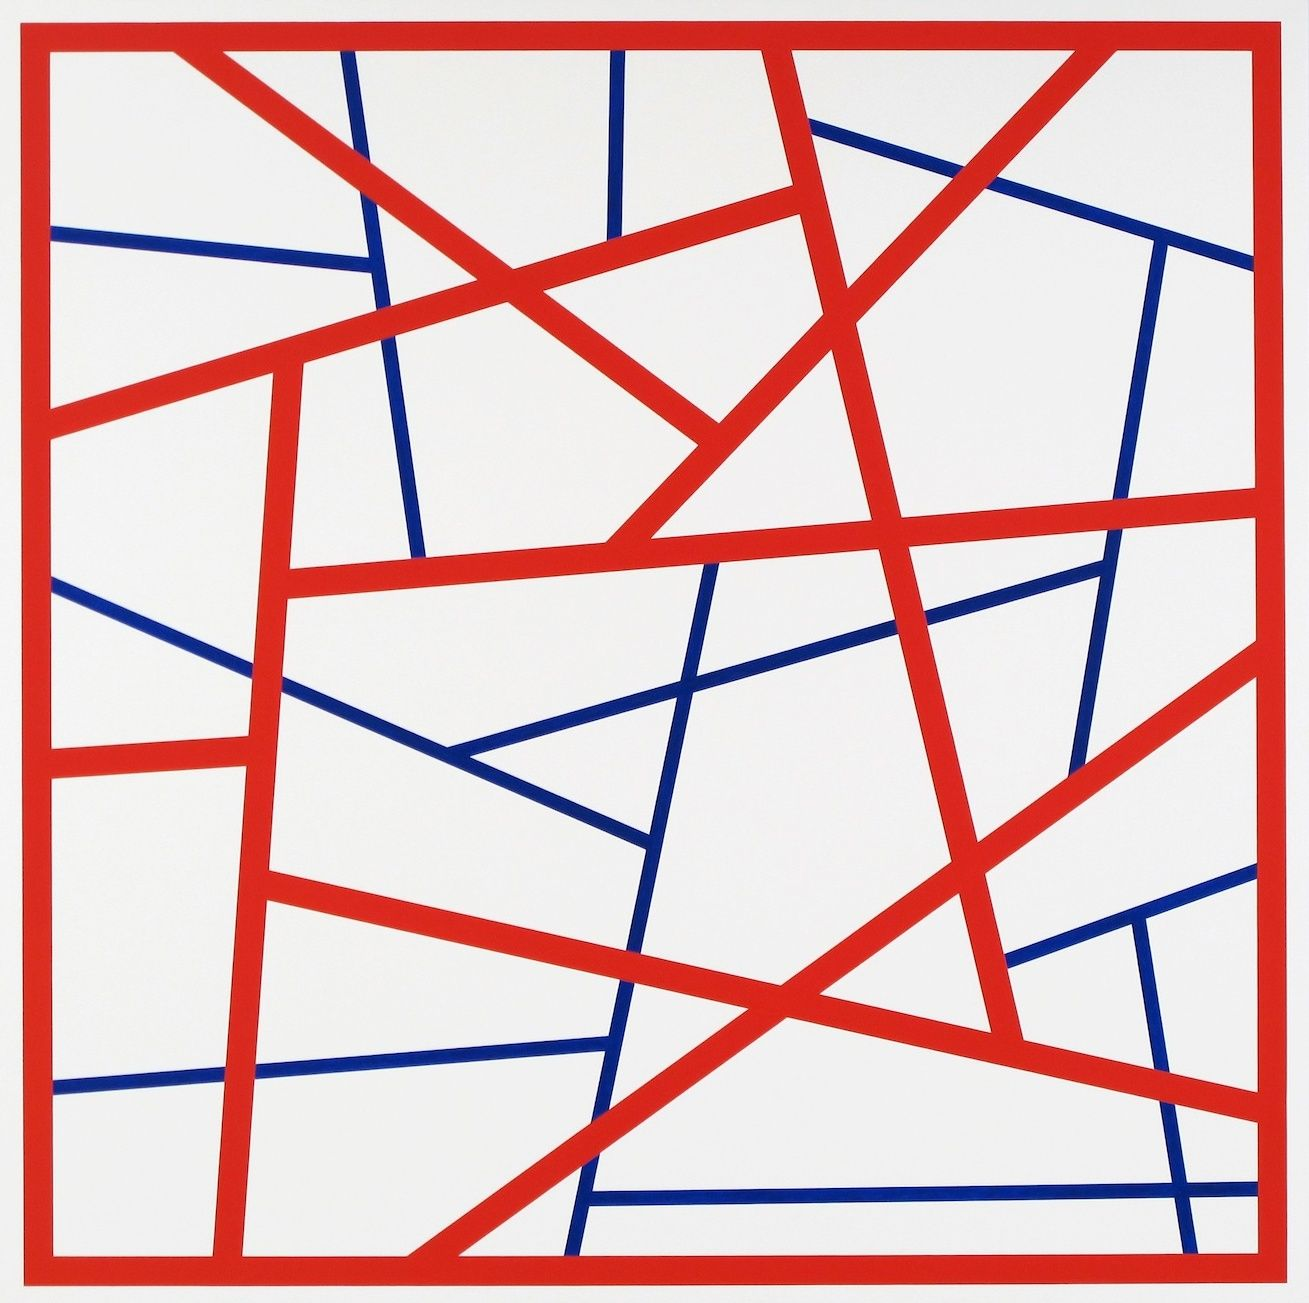 CARY SMITH, Straight Lines #18 (red-blue),2015